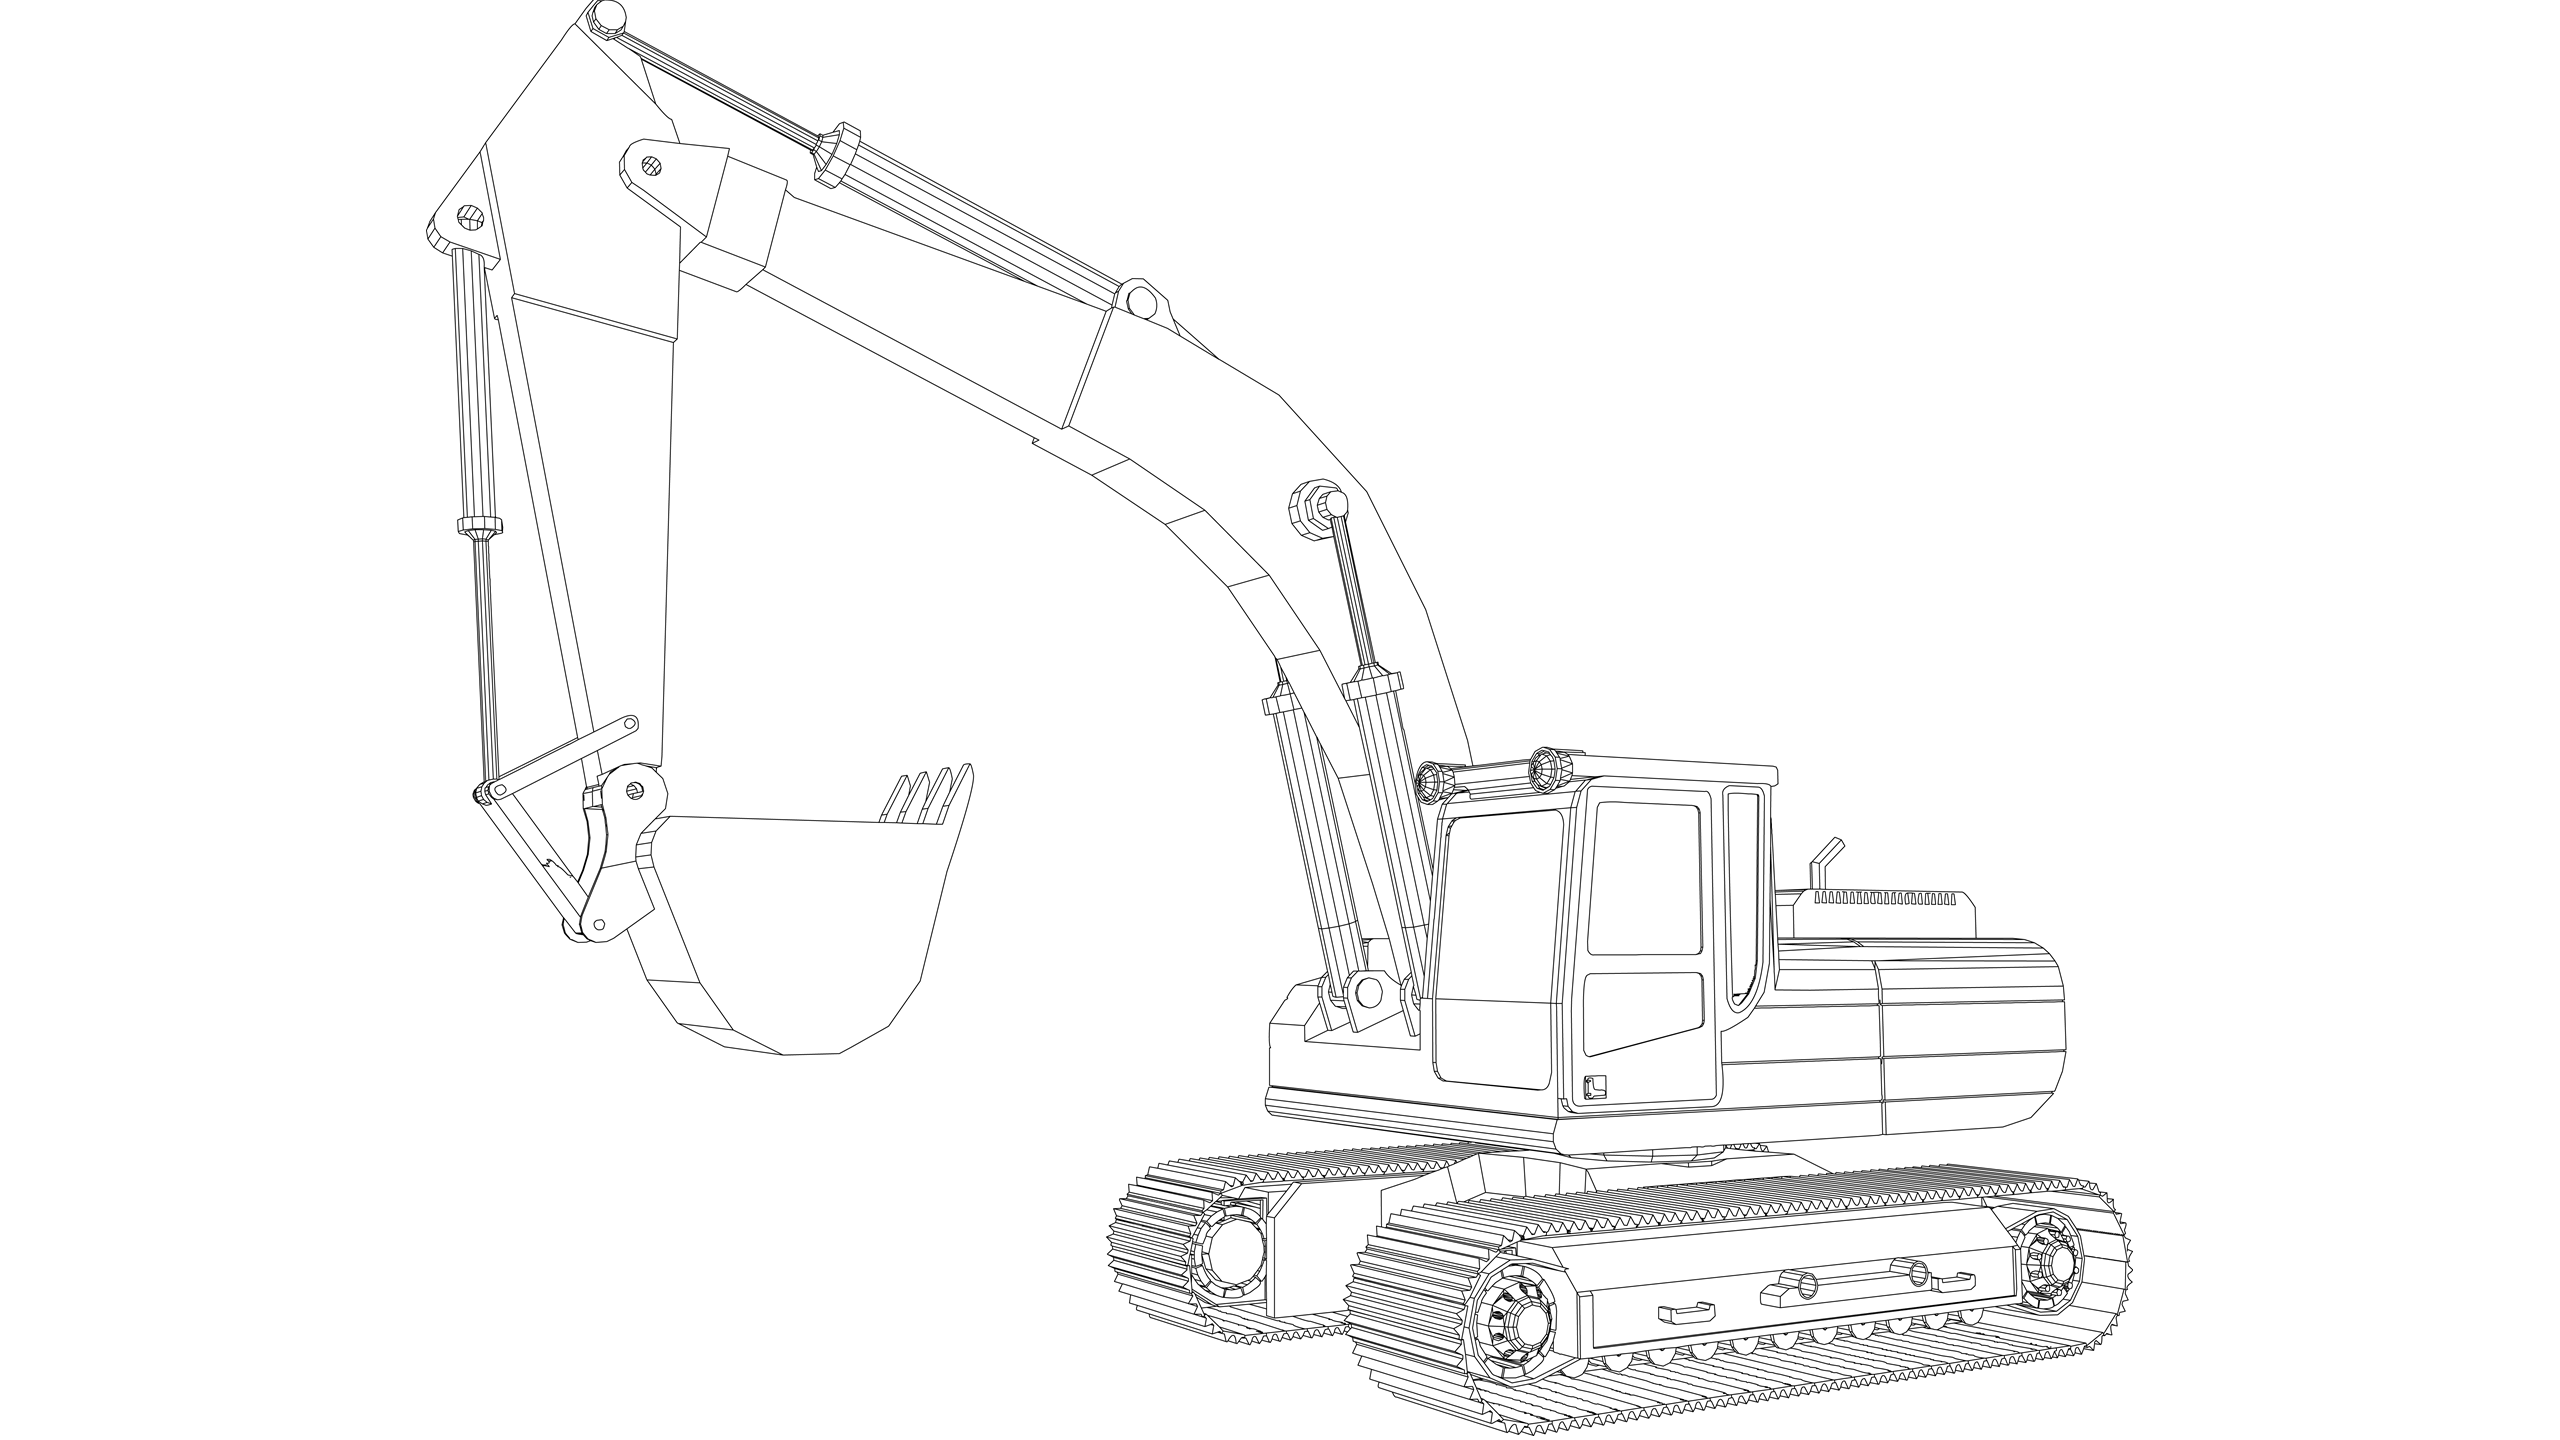 Vector Image: Hydraulic Excavator (360 Degree)